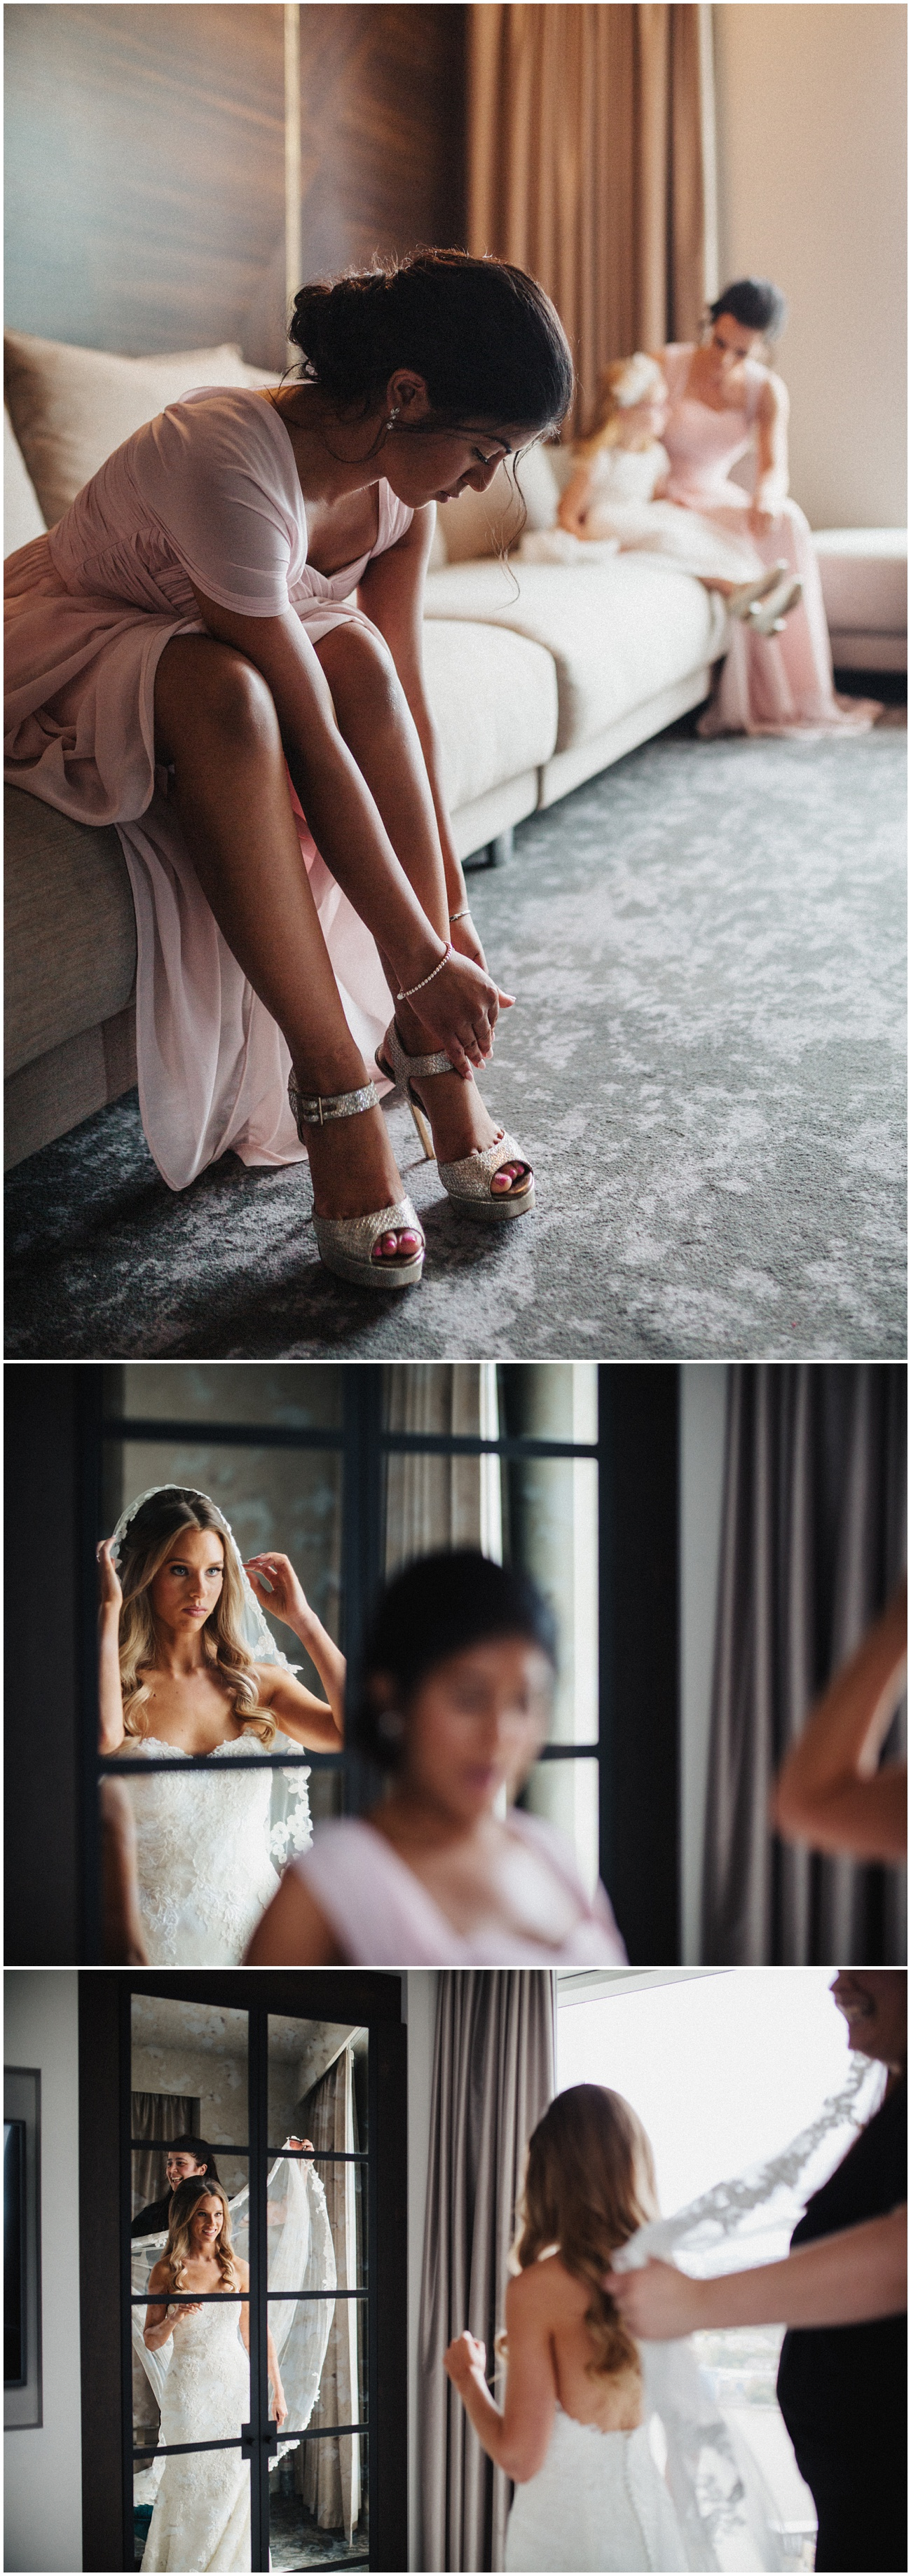 The bridesmaid putting her shoes on and the bride wearing her wedding dress putting her veil on